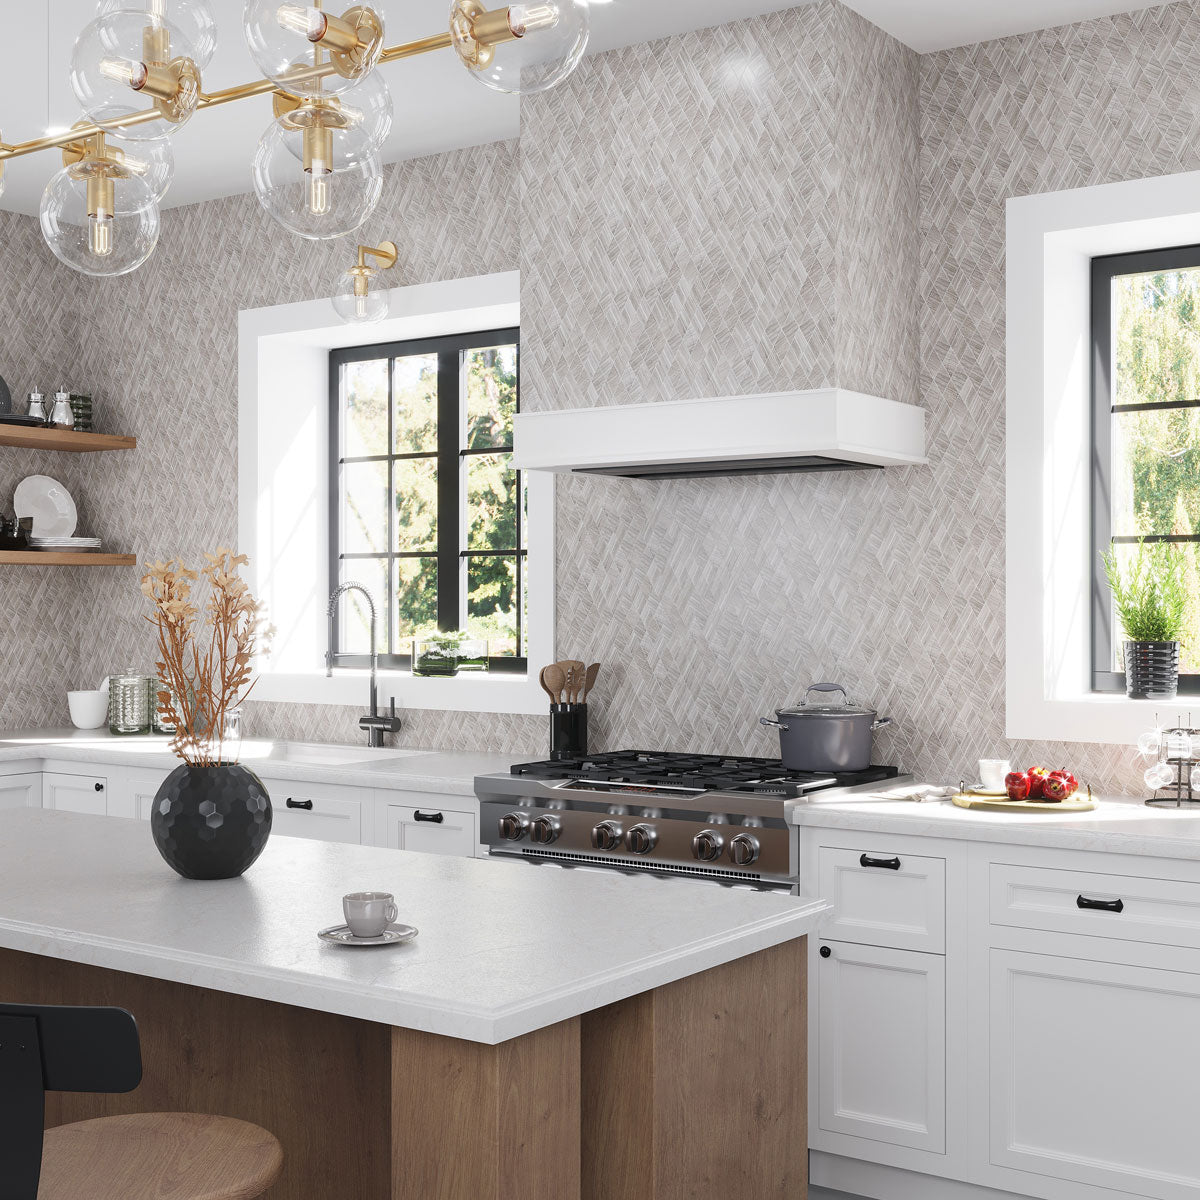 Neutral Kitchen Design Ideas with a Tiled Vent Hood over the Stove